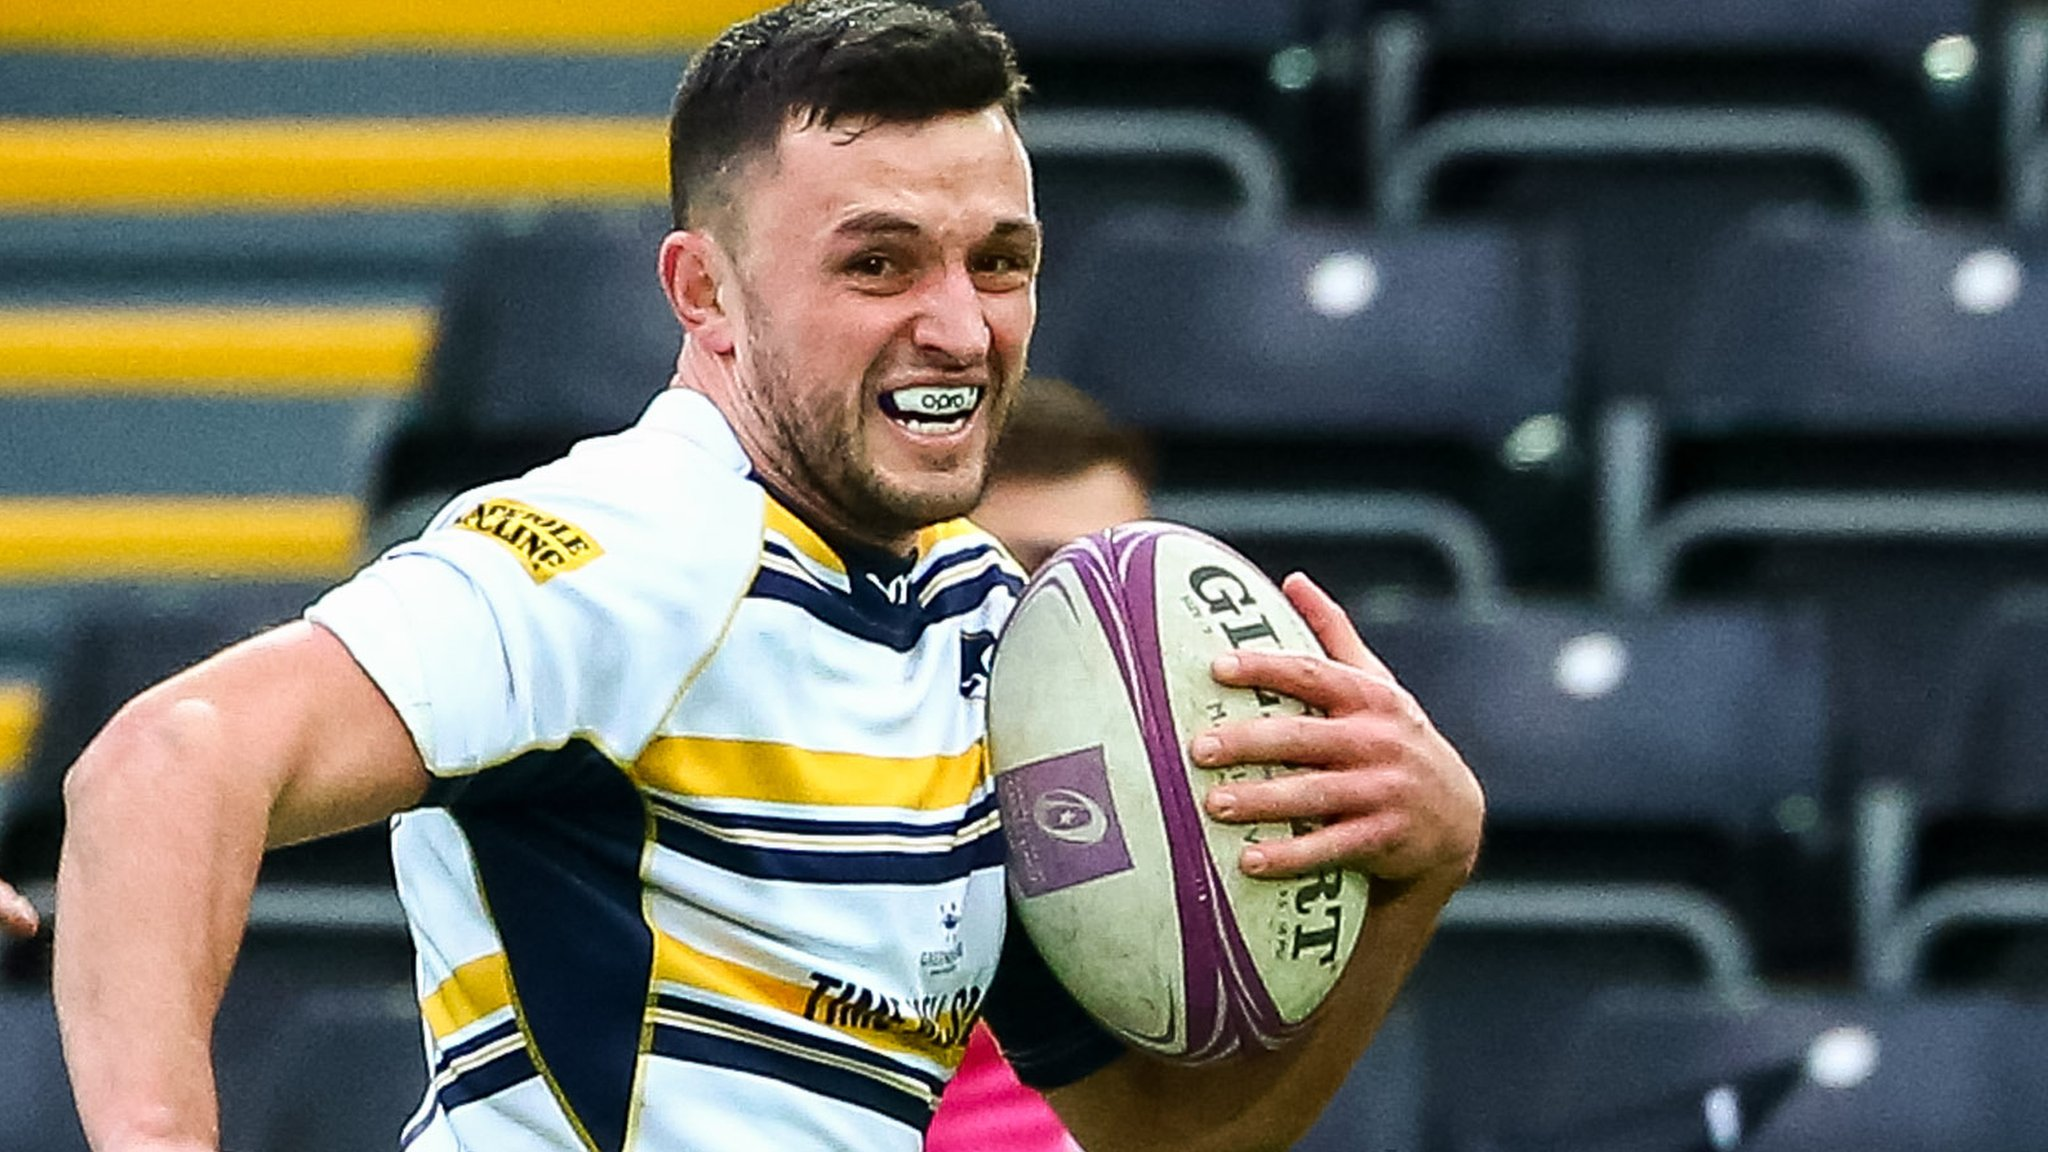 Worcester Warriors: Jonny Arr to leave club at end of season after 23 years